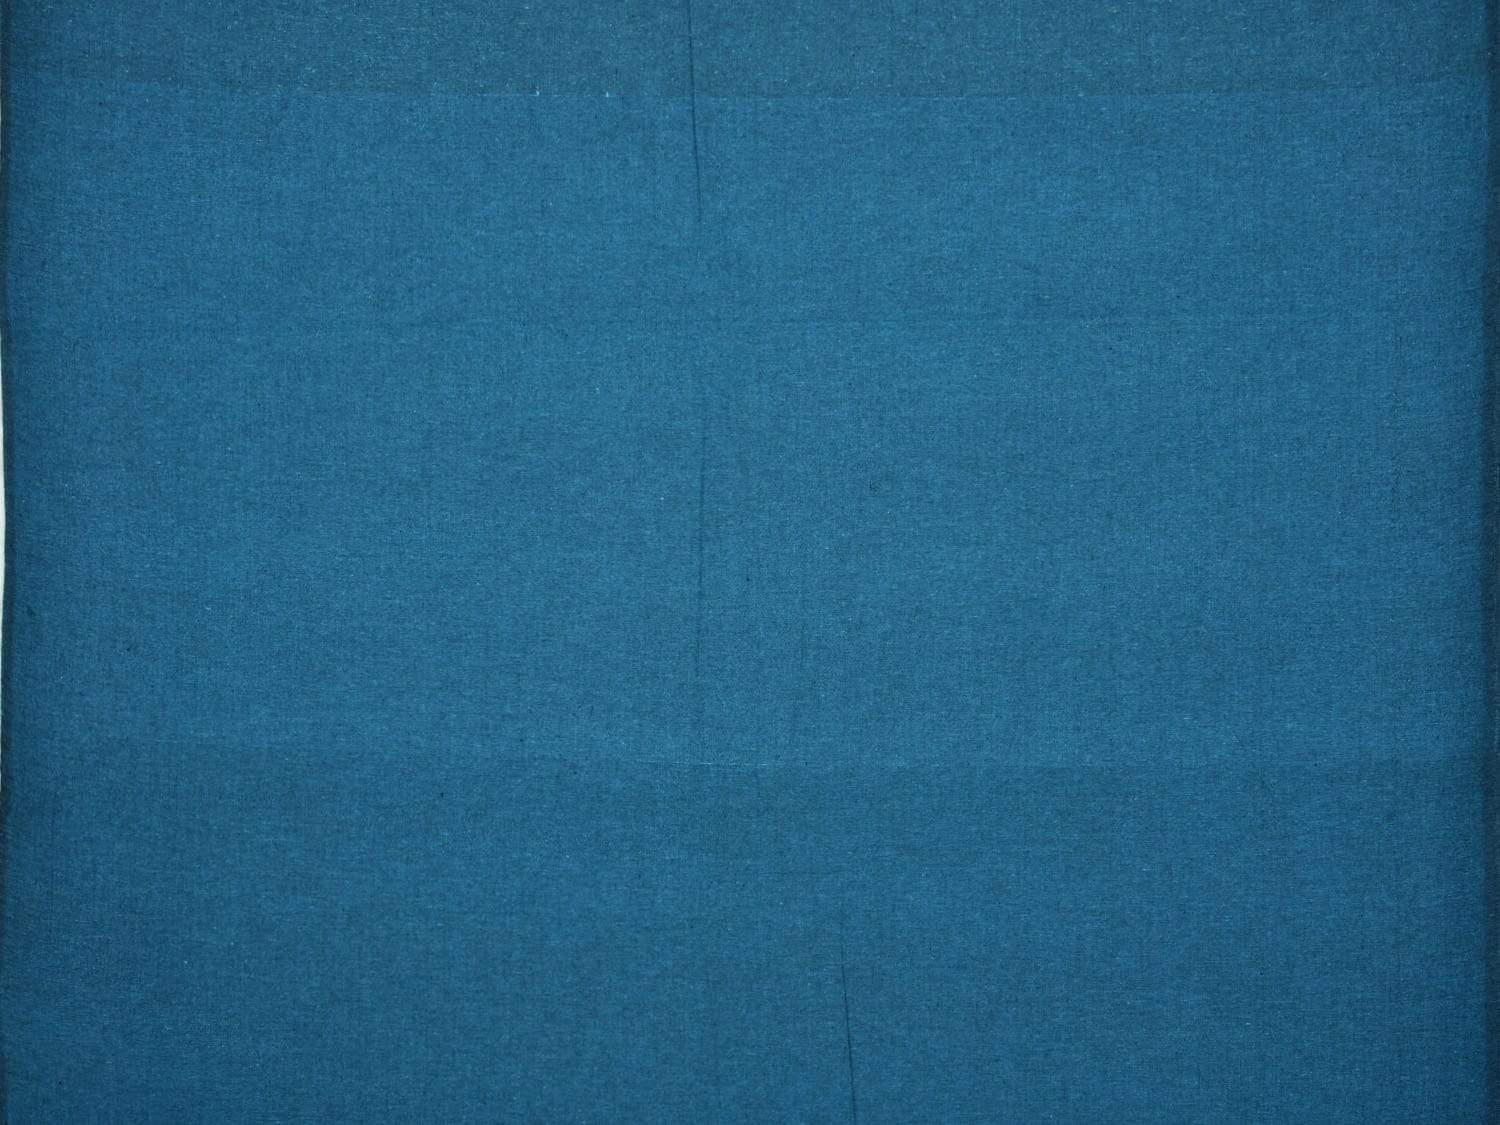 Teal Cotton Handloom Fabric Material with Plain Design f0153